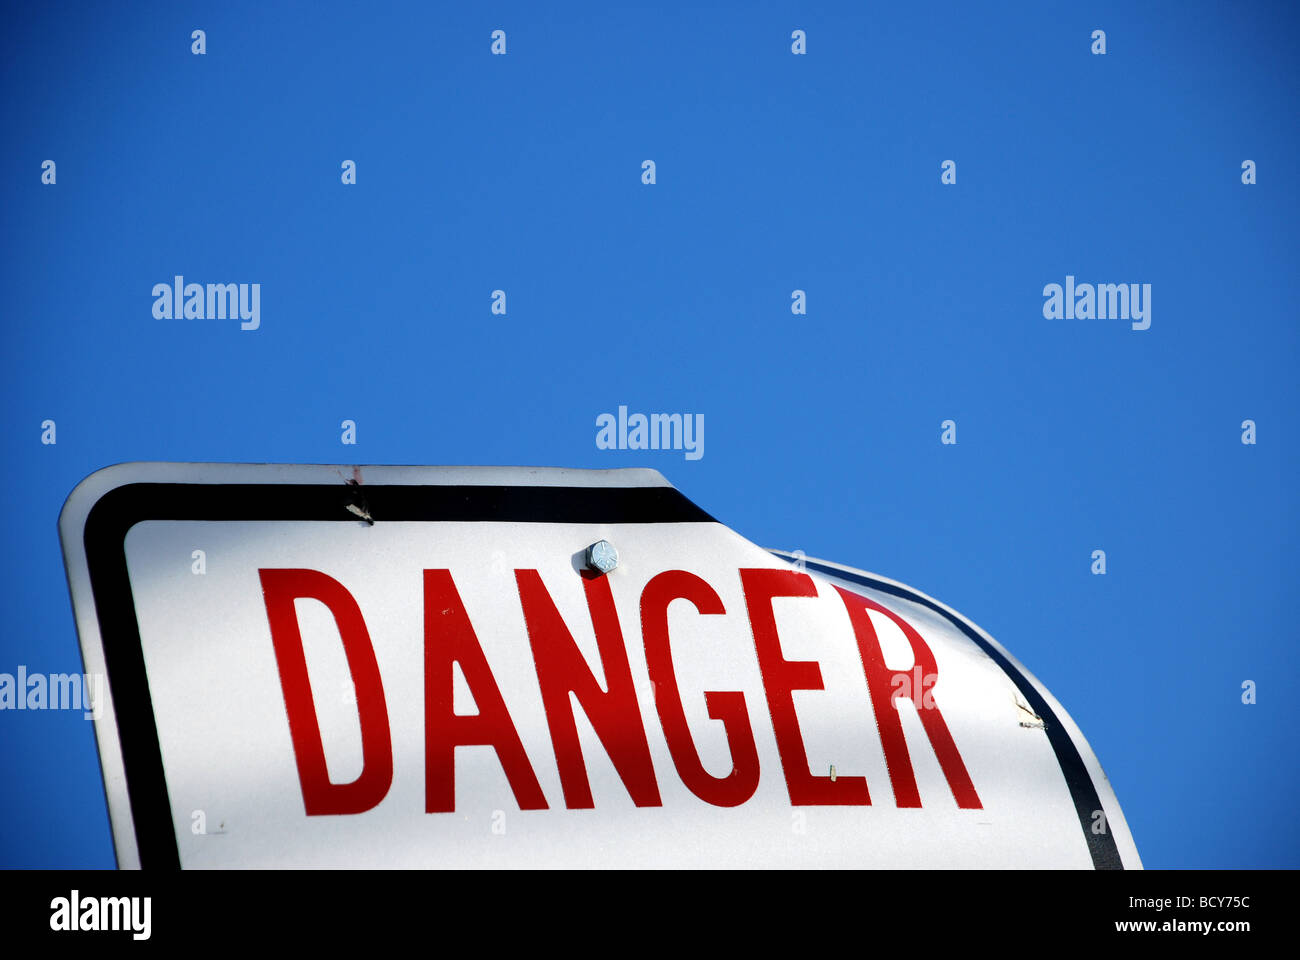 White sign with red type saying DANGER with blue sky in background - Stock Image